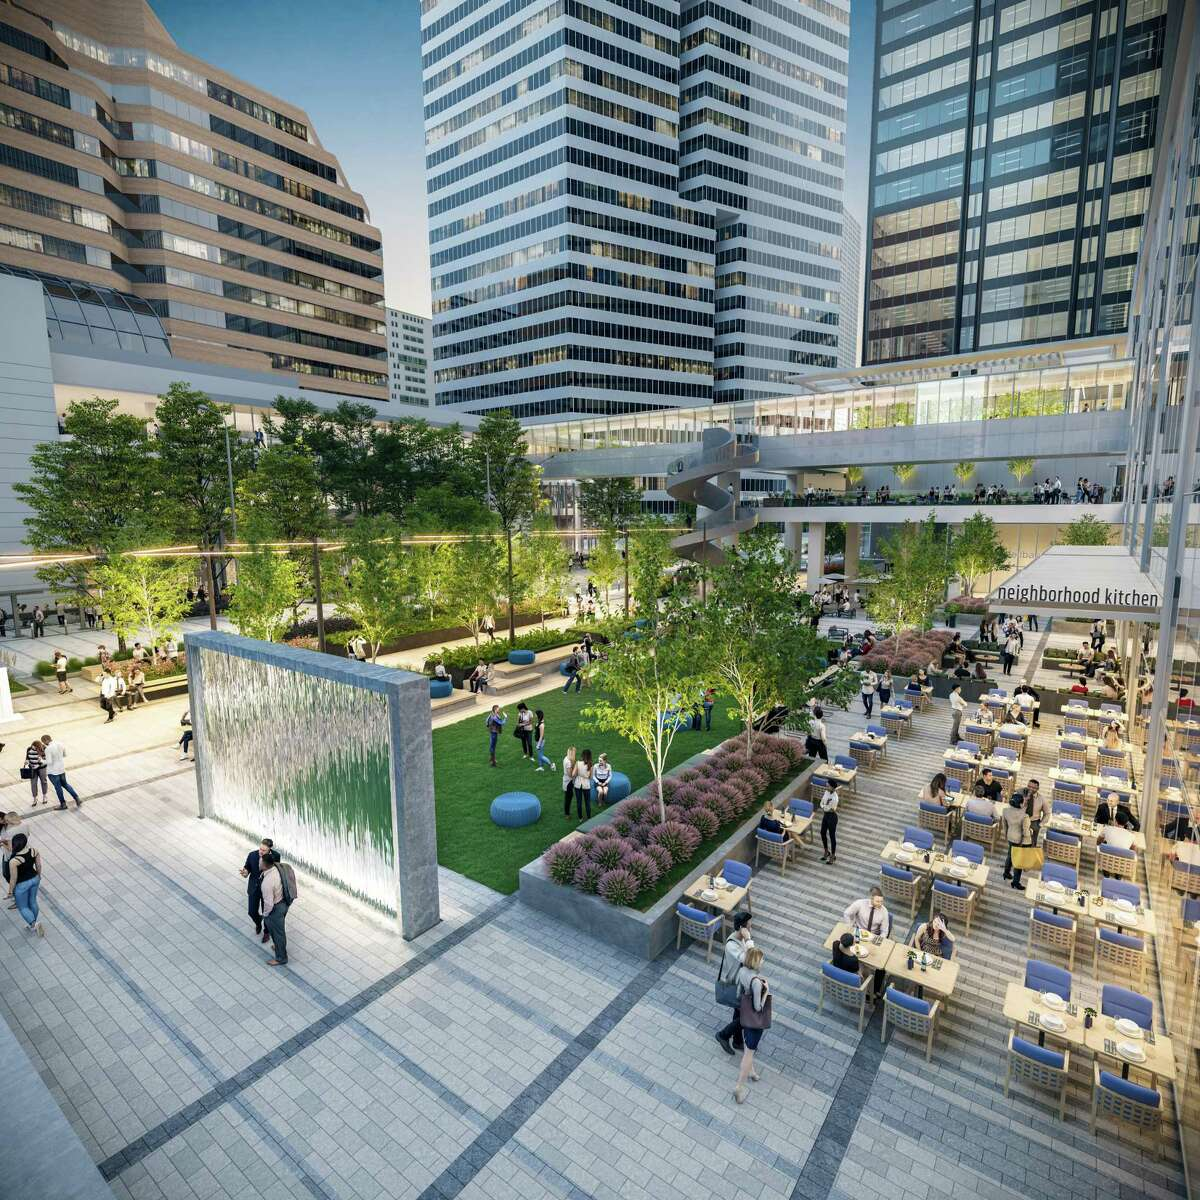 A rendering shows a new central plaza at Houston Center.